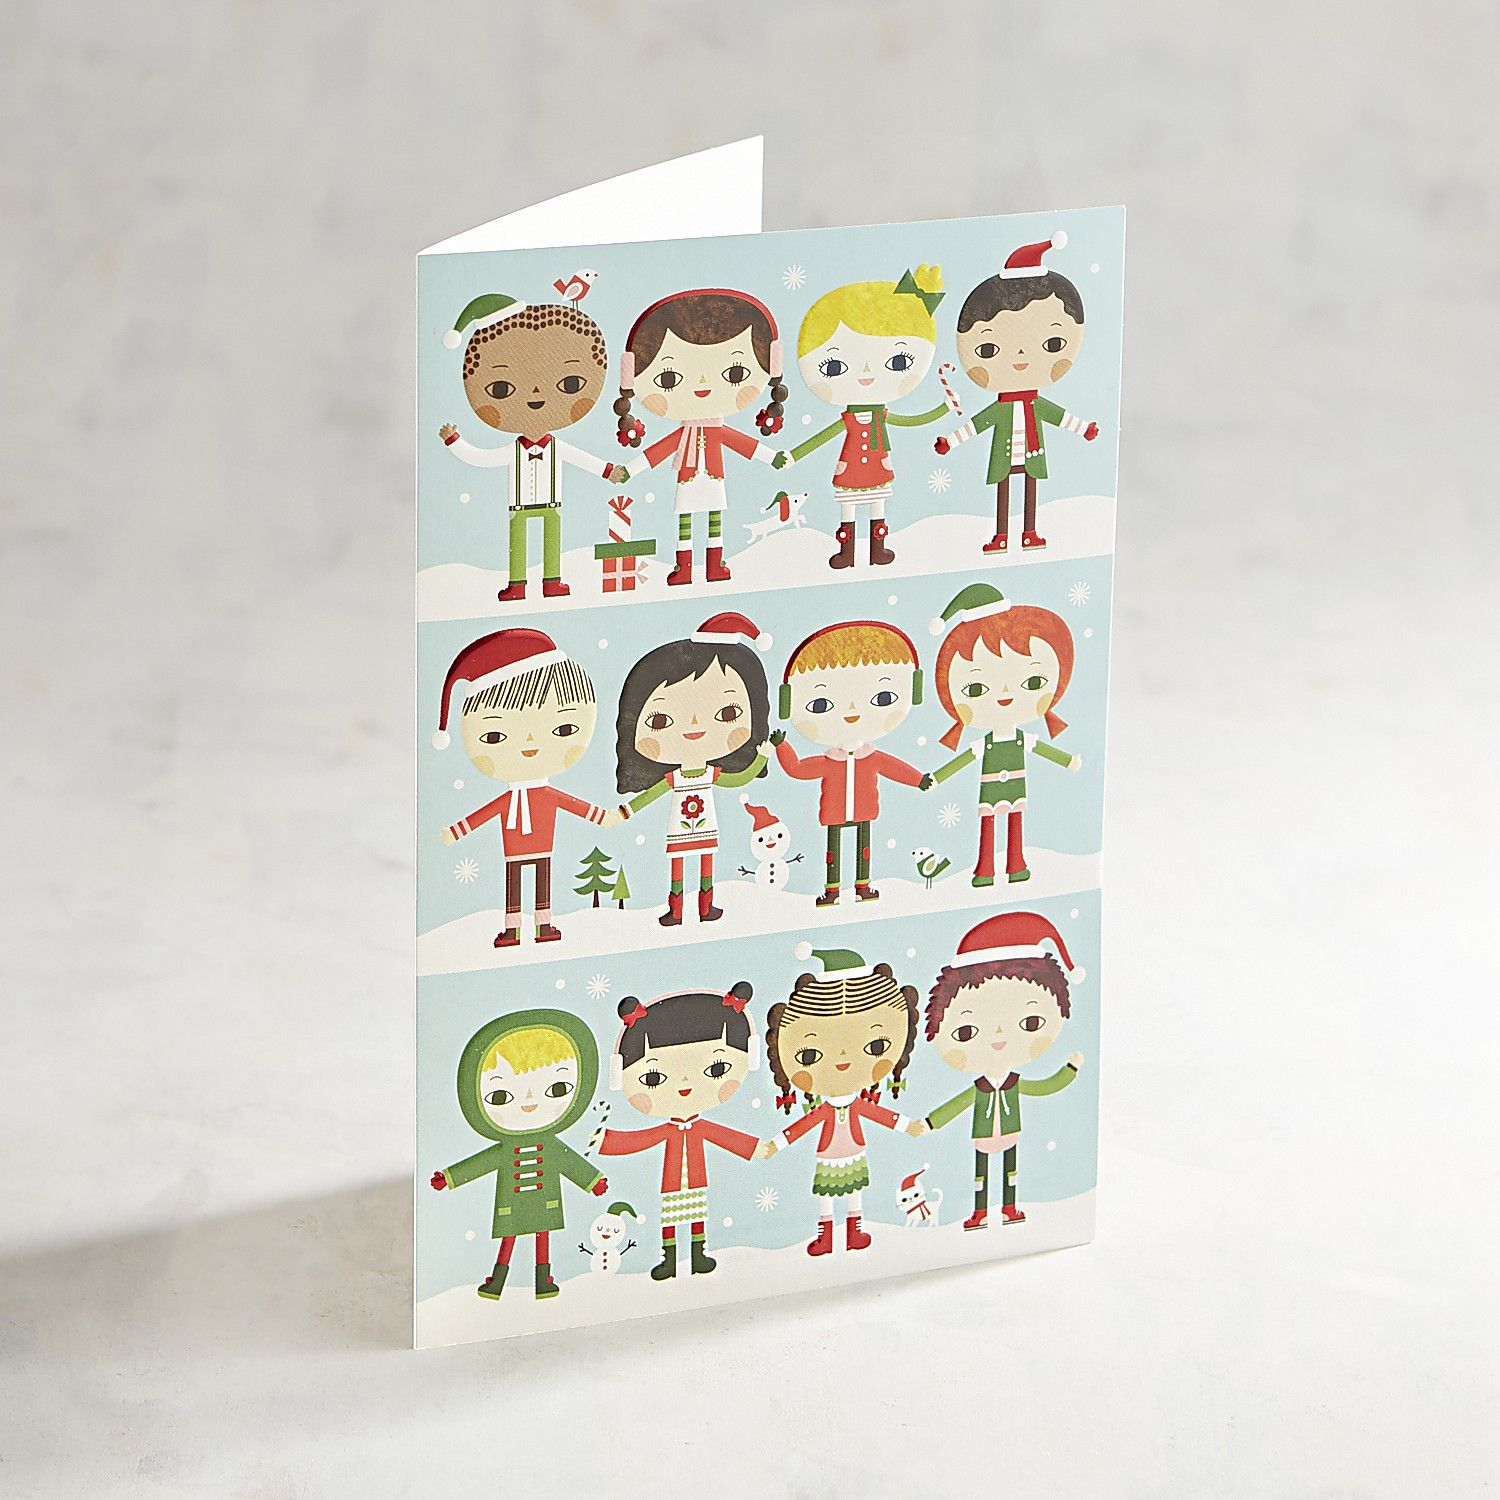 unicef kids holding hands holiday card pack of 12 - Unicef Holiday Cards